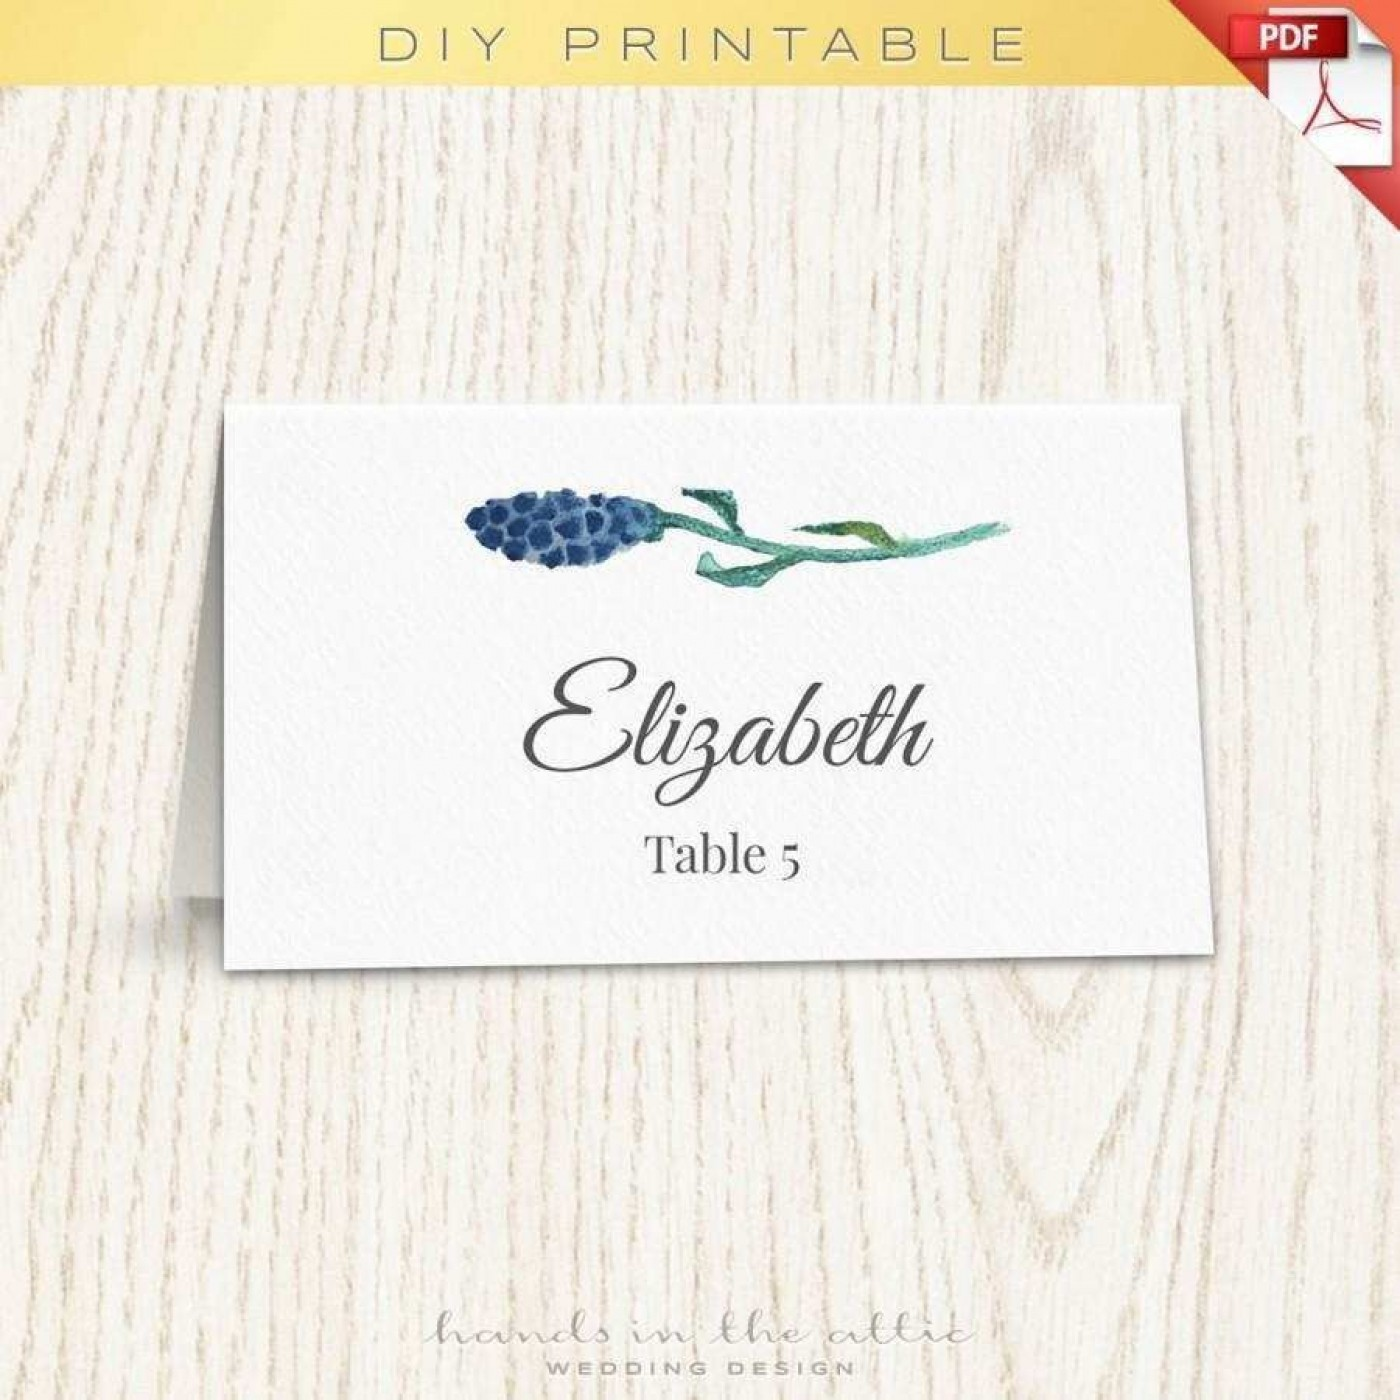 001 Singular Wedding Name Card Template Idea  Seating Chart Place Free1400